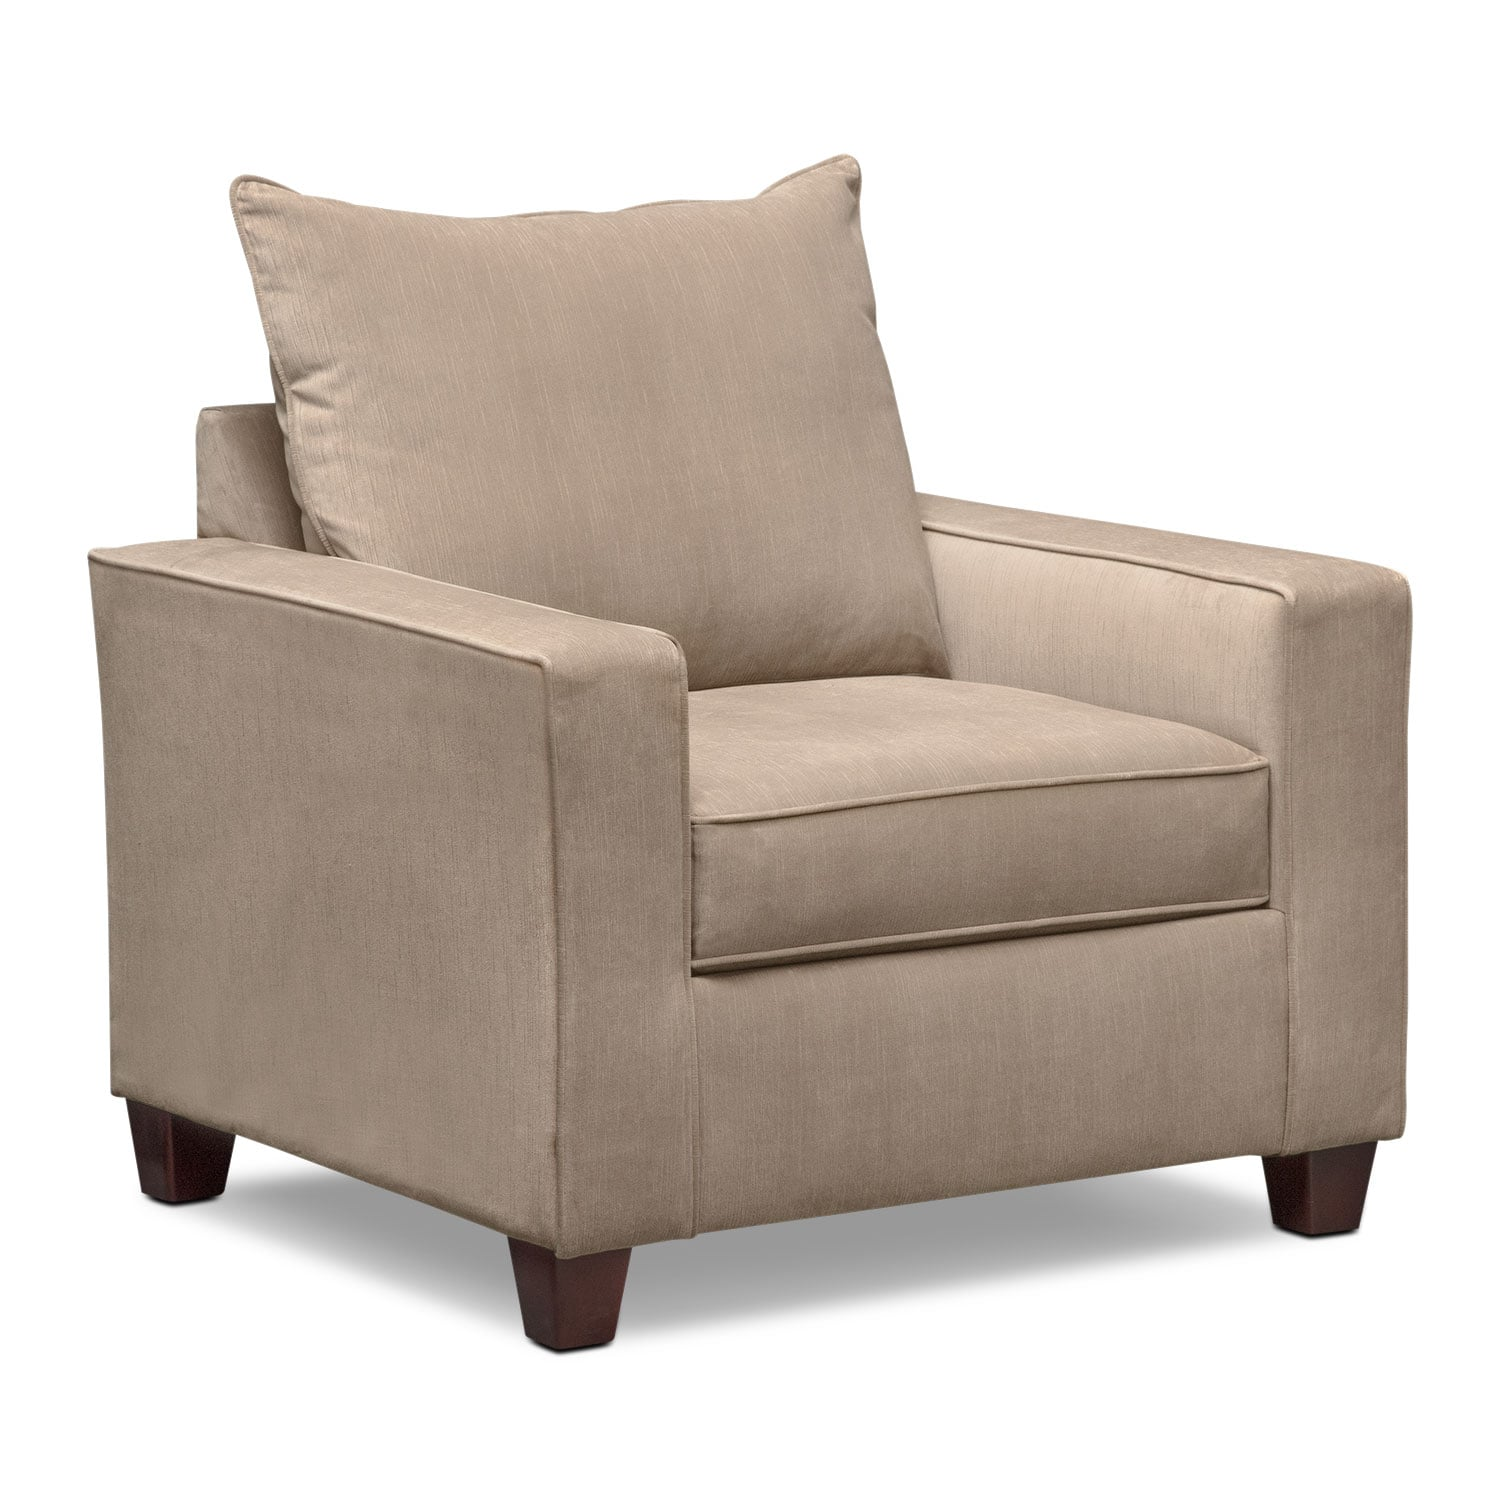 Bryden Sofa Loveseat and Chair Set Beige